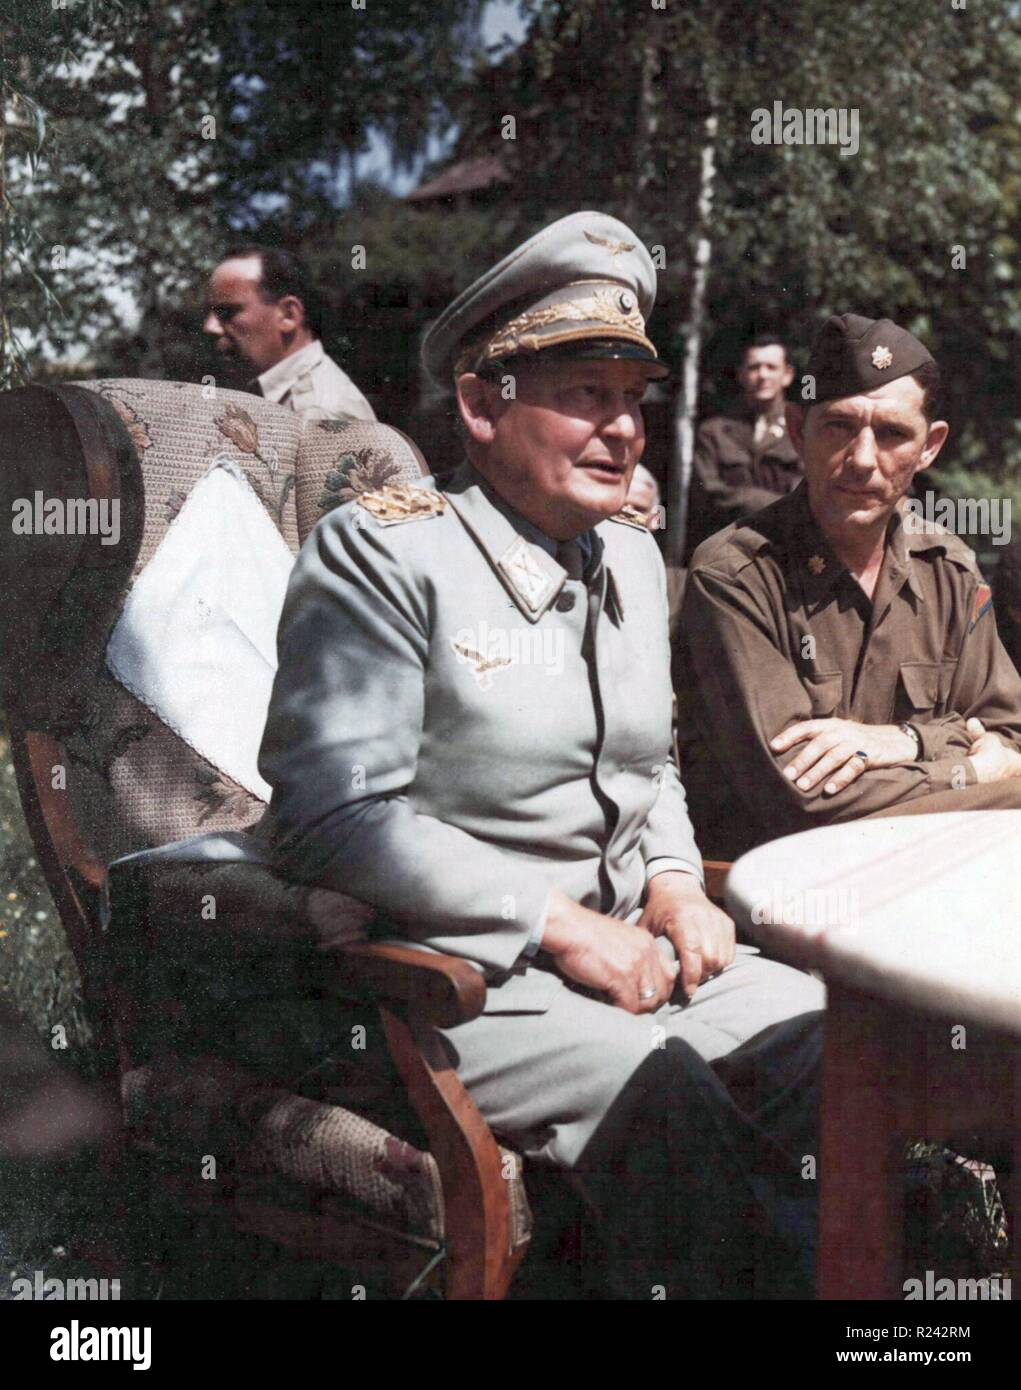 Hermann Wilhelm Goring ( 1893 - 15 October 1946) German politician, of the Nazi Party (NSDAP),captured in Germany 1945 Stock Photo